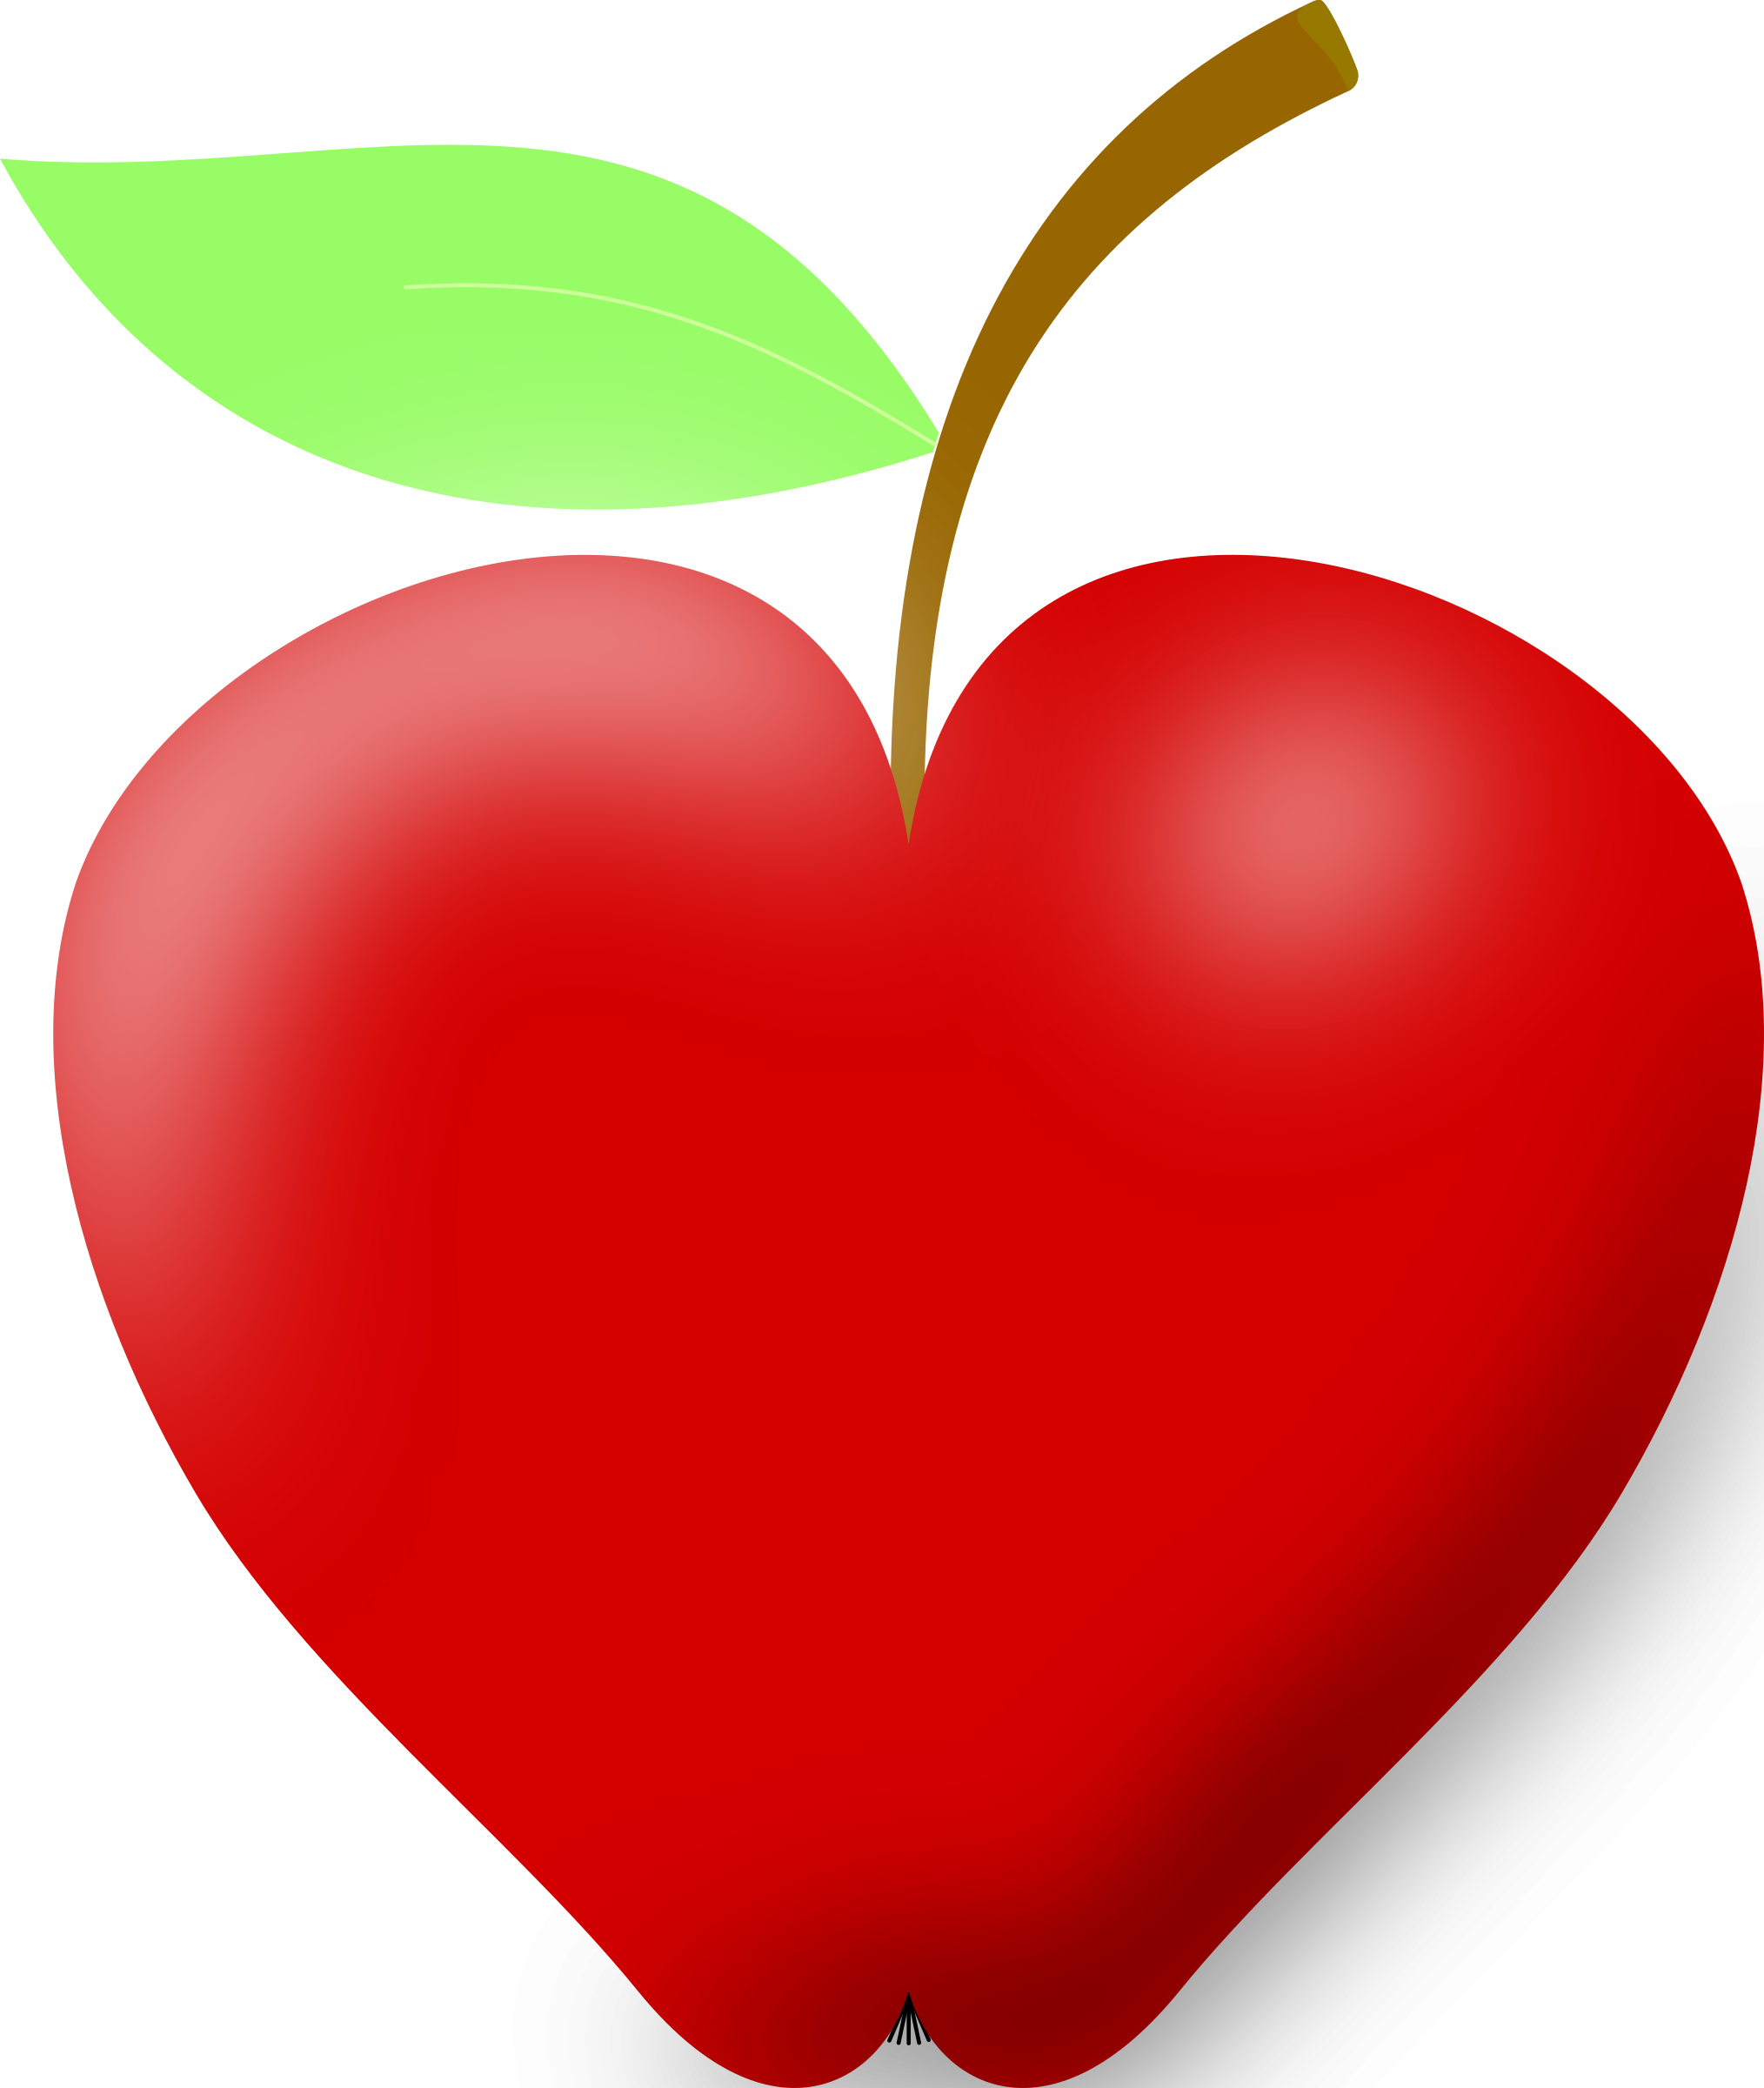 Heart shaped leaf clipart jpg black and white library 28+ Collection of Heart Shaped Apple Clipart | High quality, free ... jpg black and white library